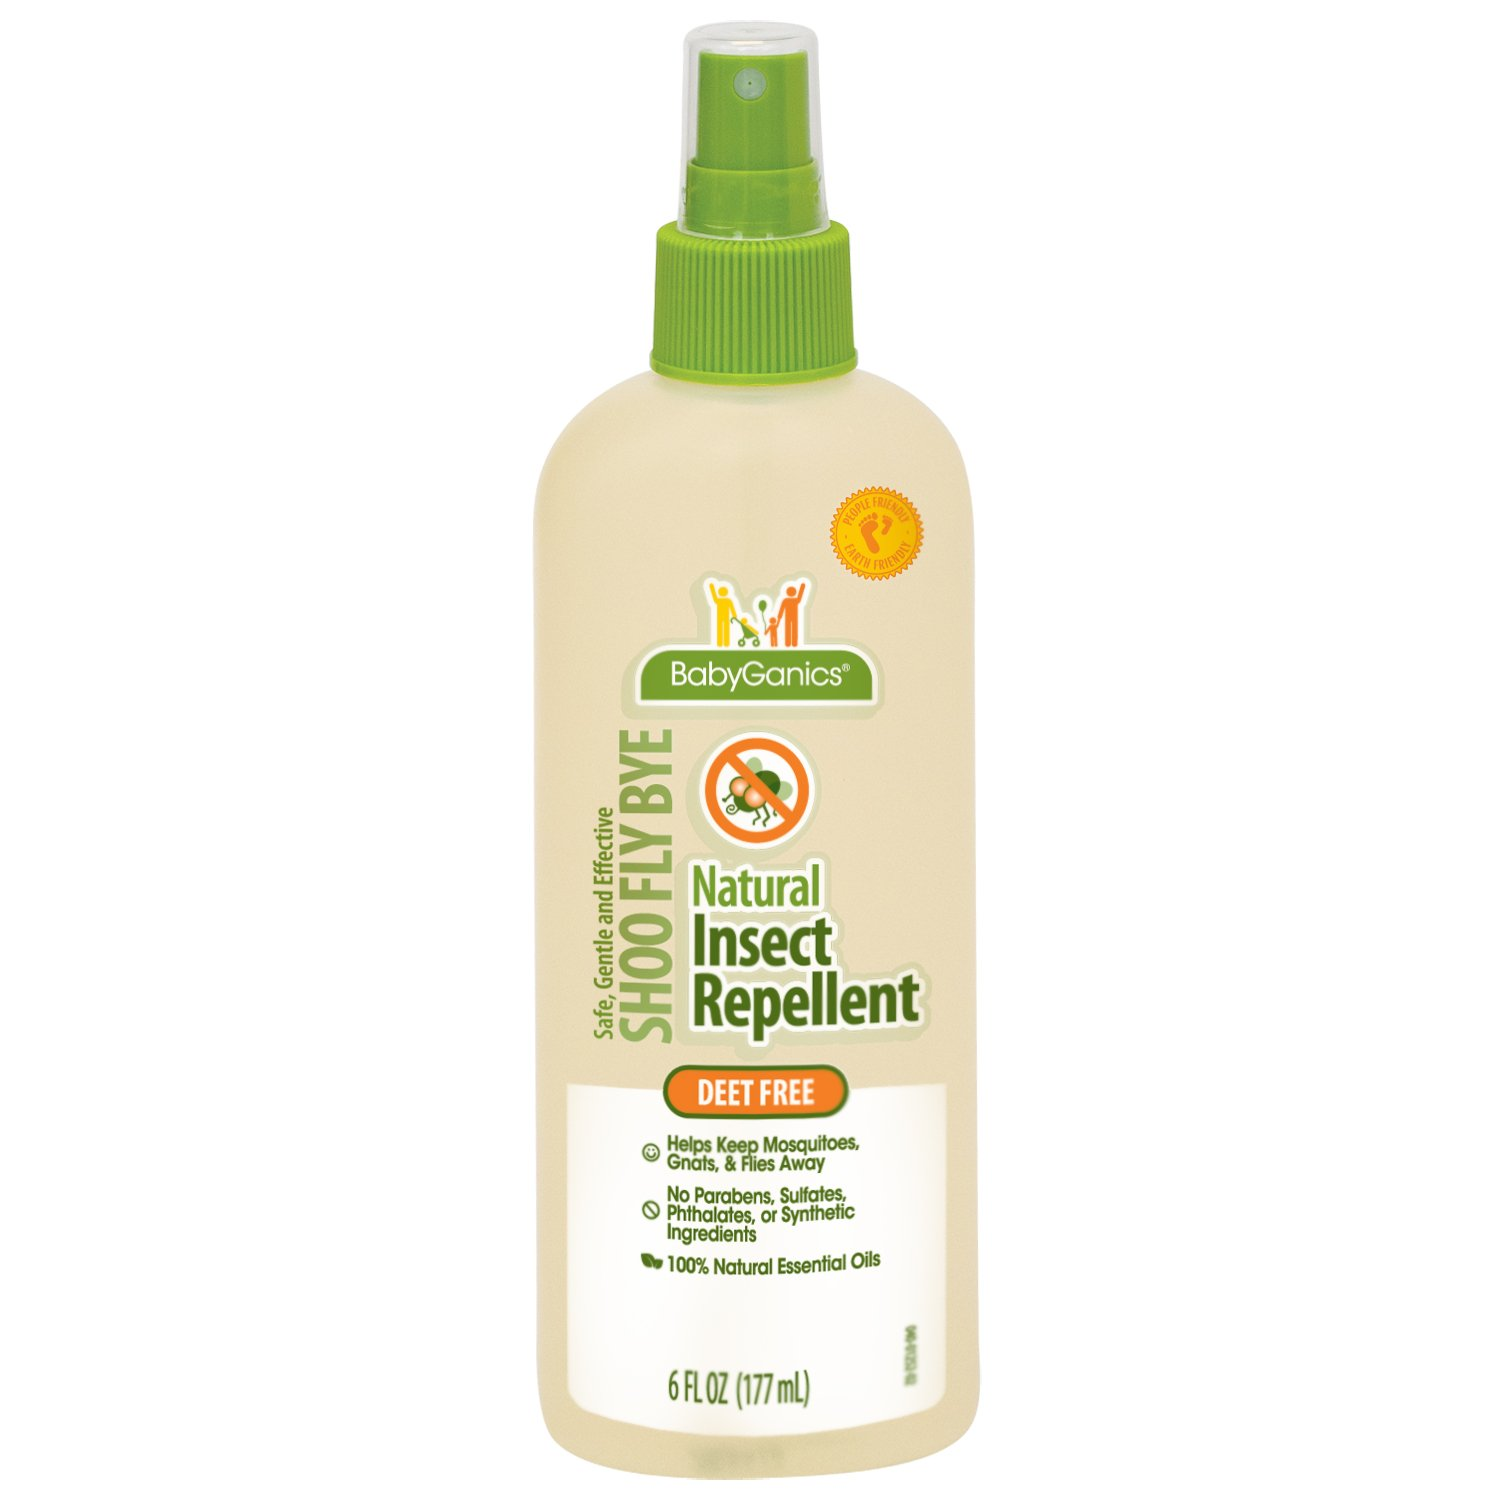 Babyganics Natural Insect Repellent, 6 oz, Packaging May Vary